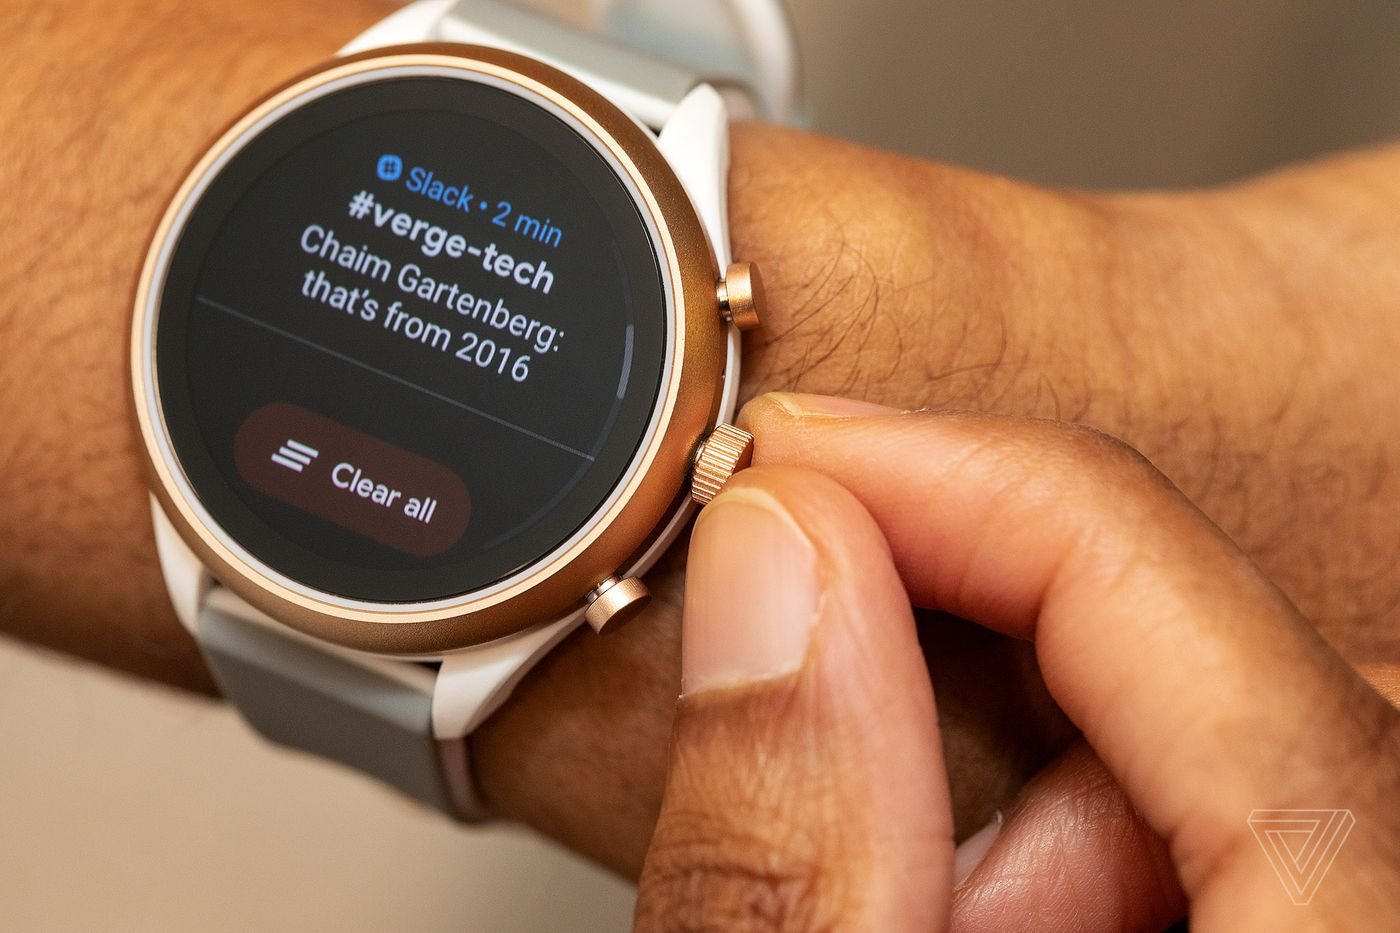 f6bae5bf7 Fossil Sport Smartwatch review: new watch, same old tricks - The Verge